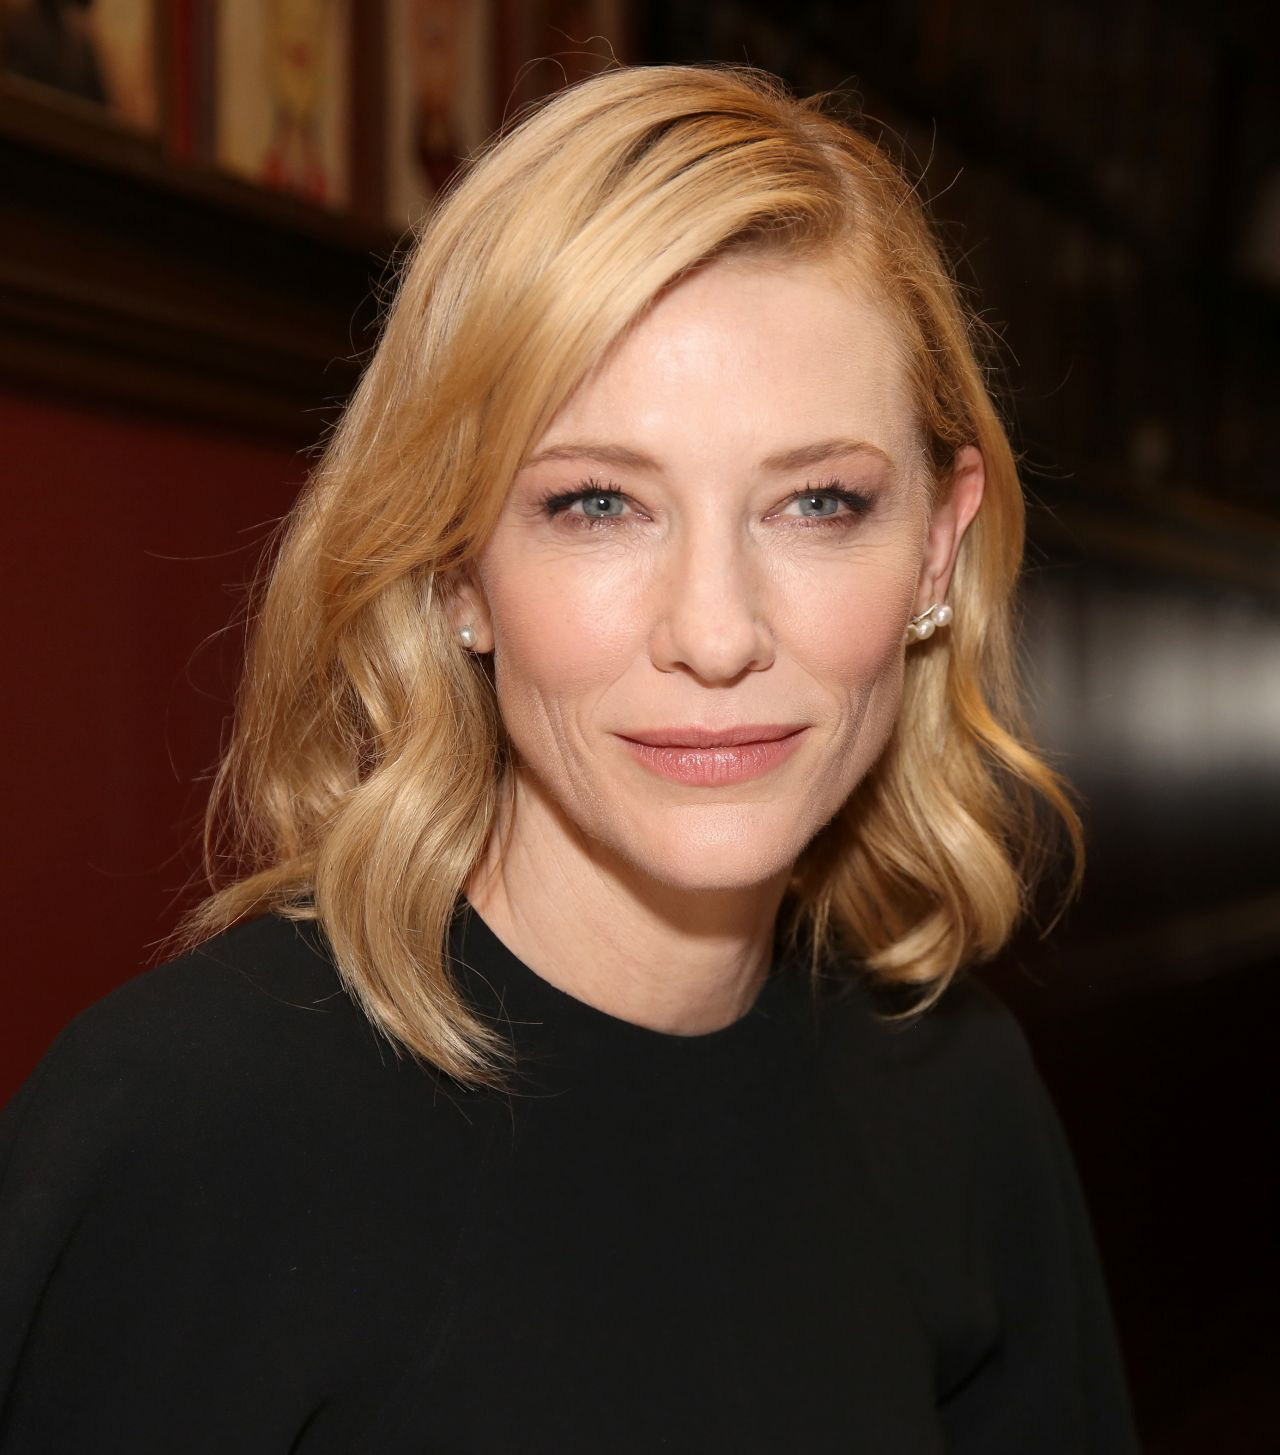 cate blanchett - photo #28